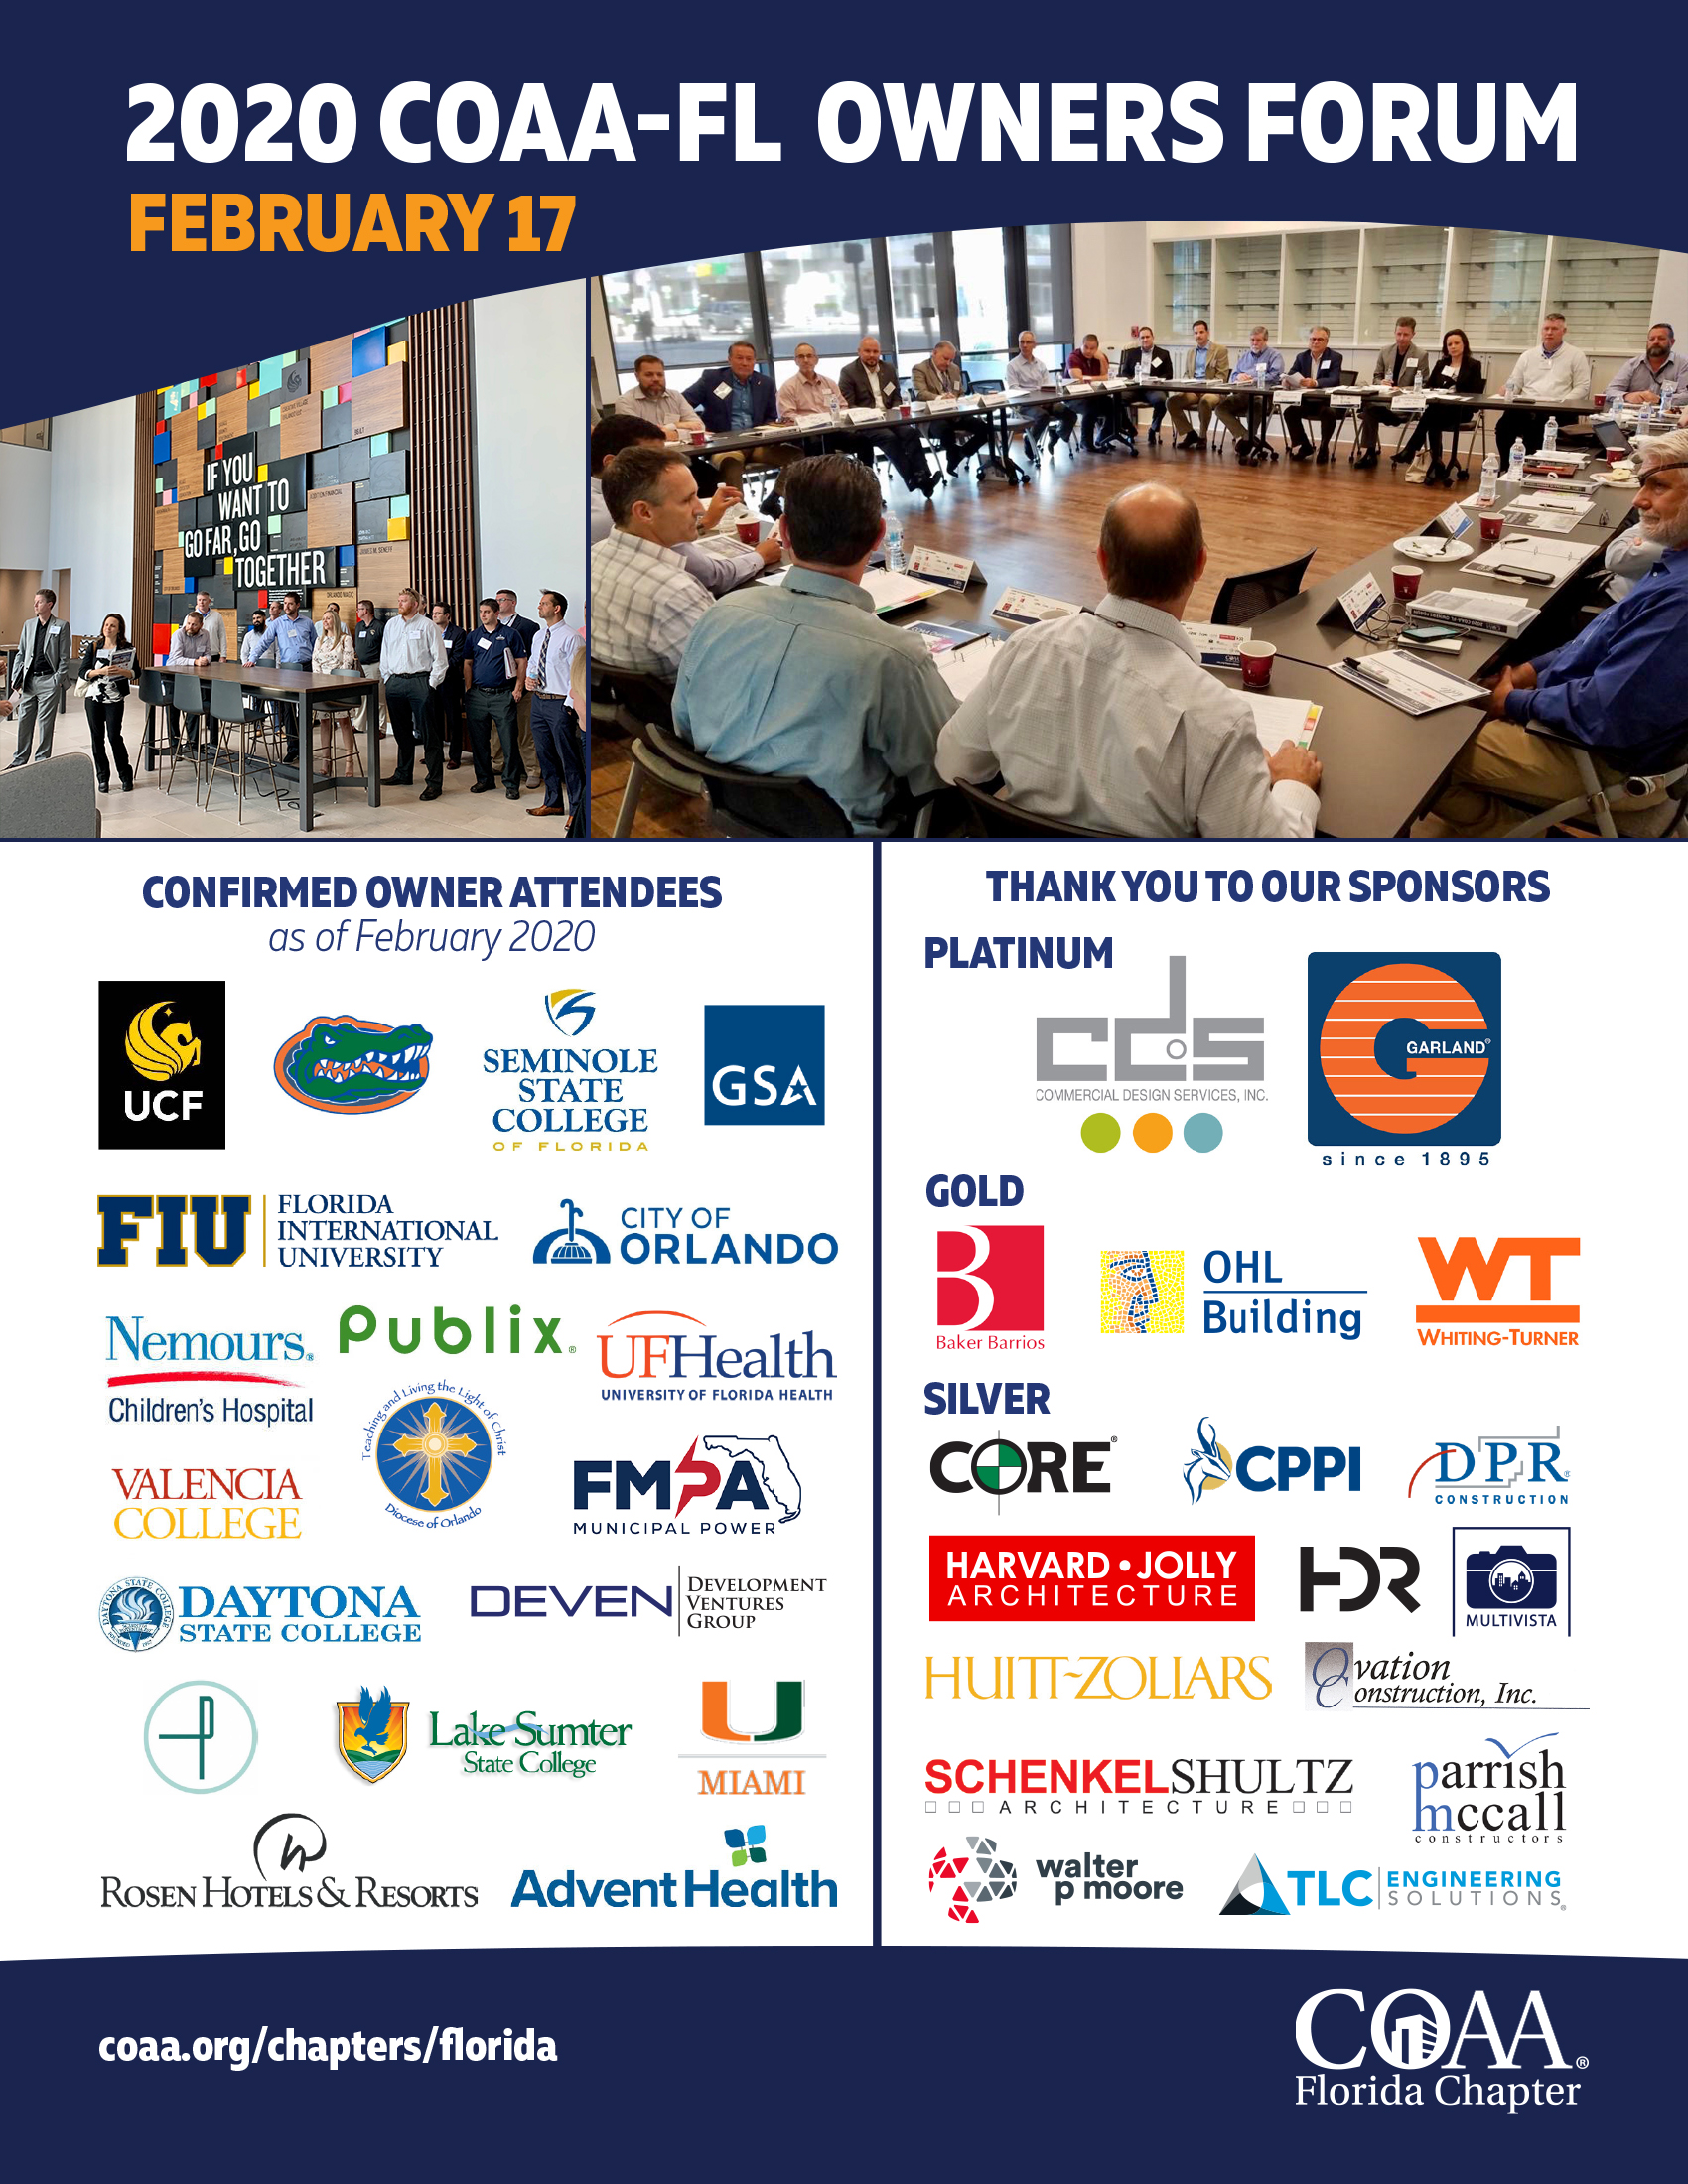 COAA-FL Owners Forum A Great Success